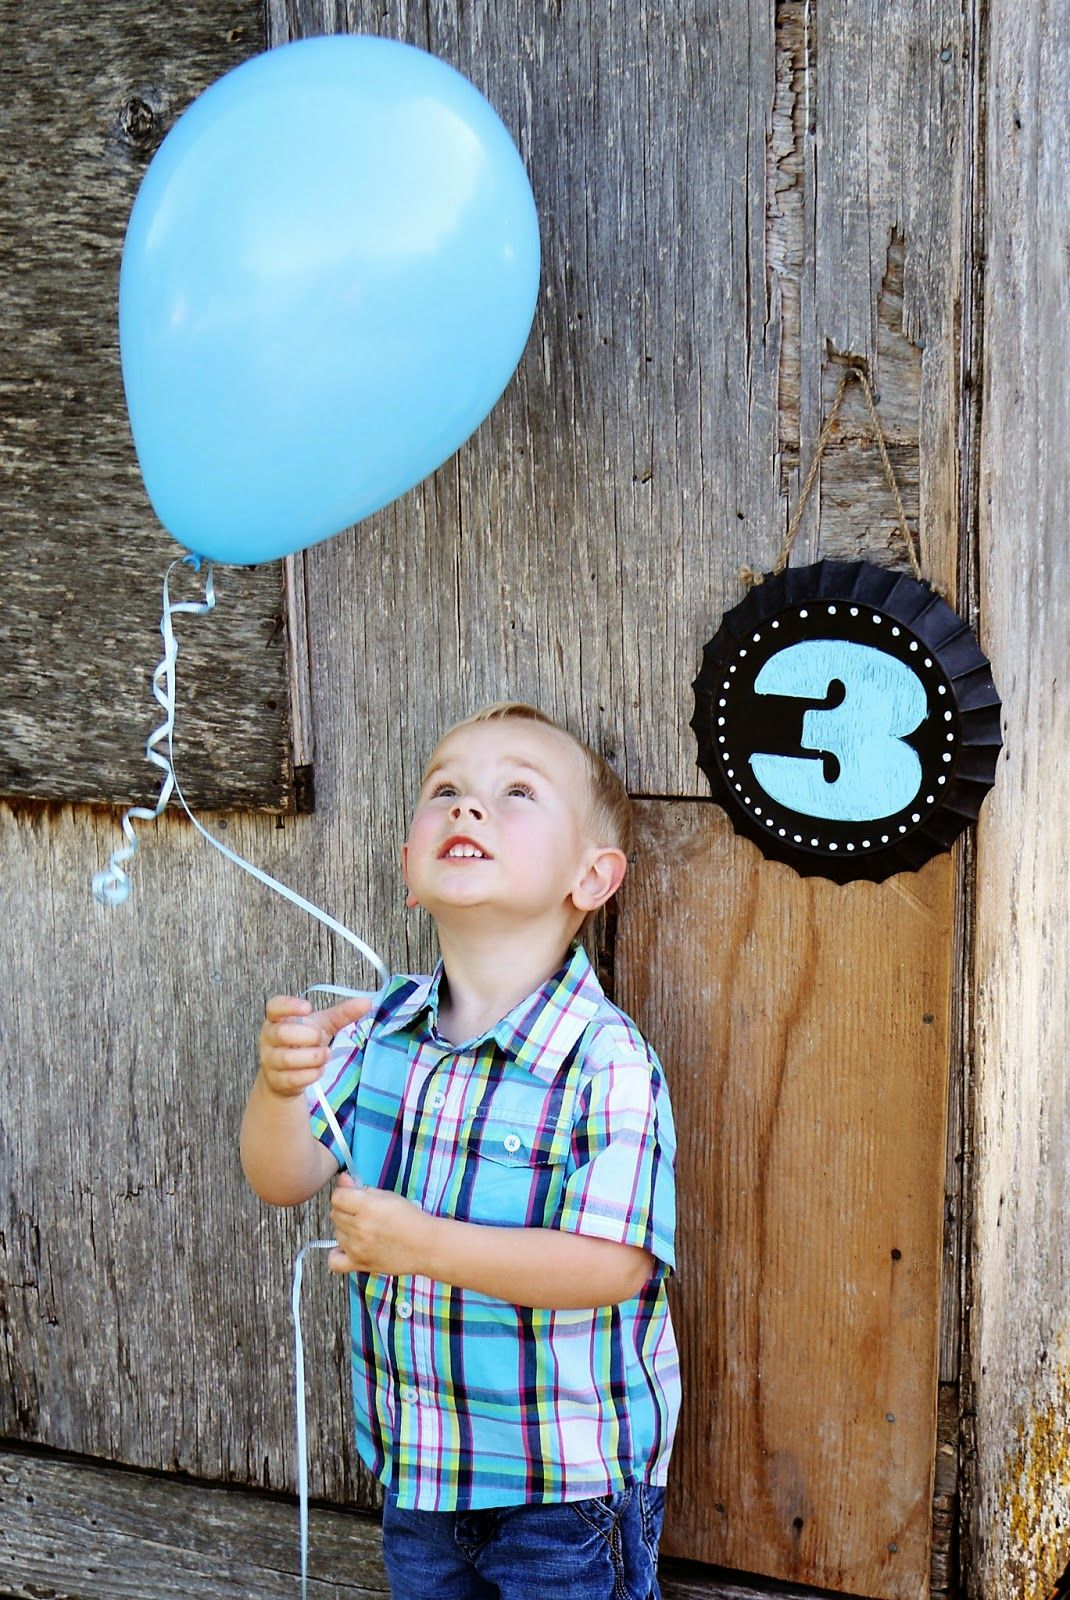 Airplane Rides Guacamole Sides Boy Birthday Pictures Birthday Photography Kids Party Balloons